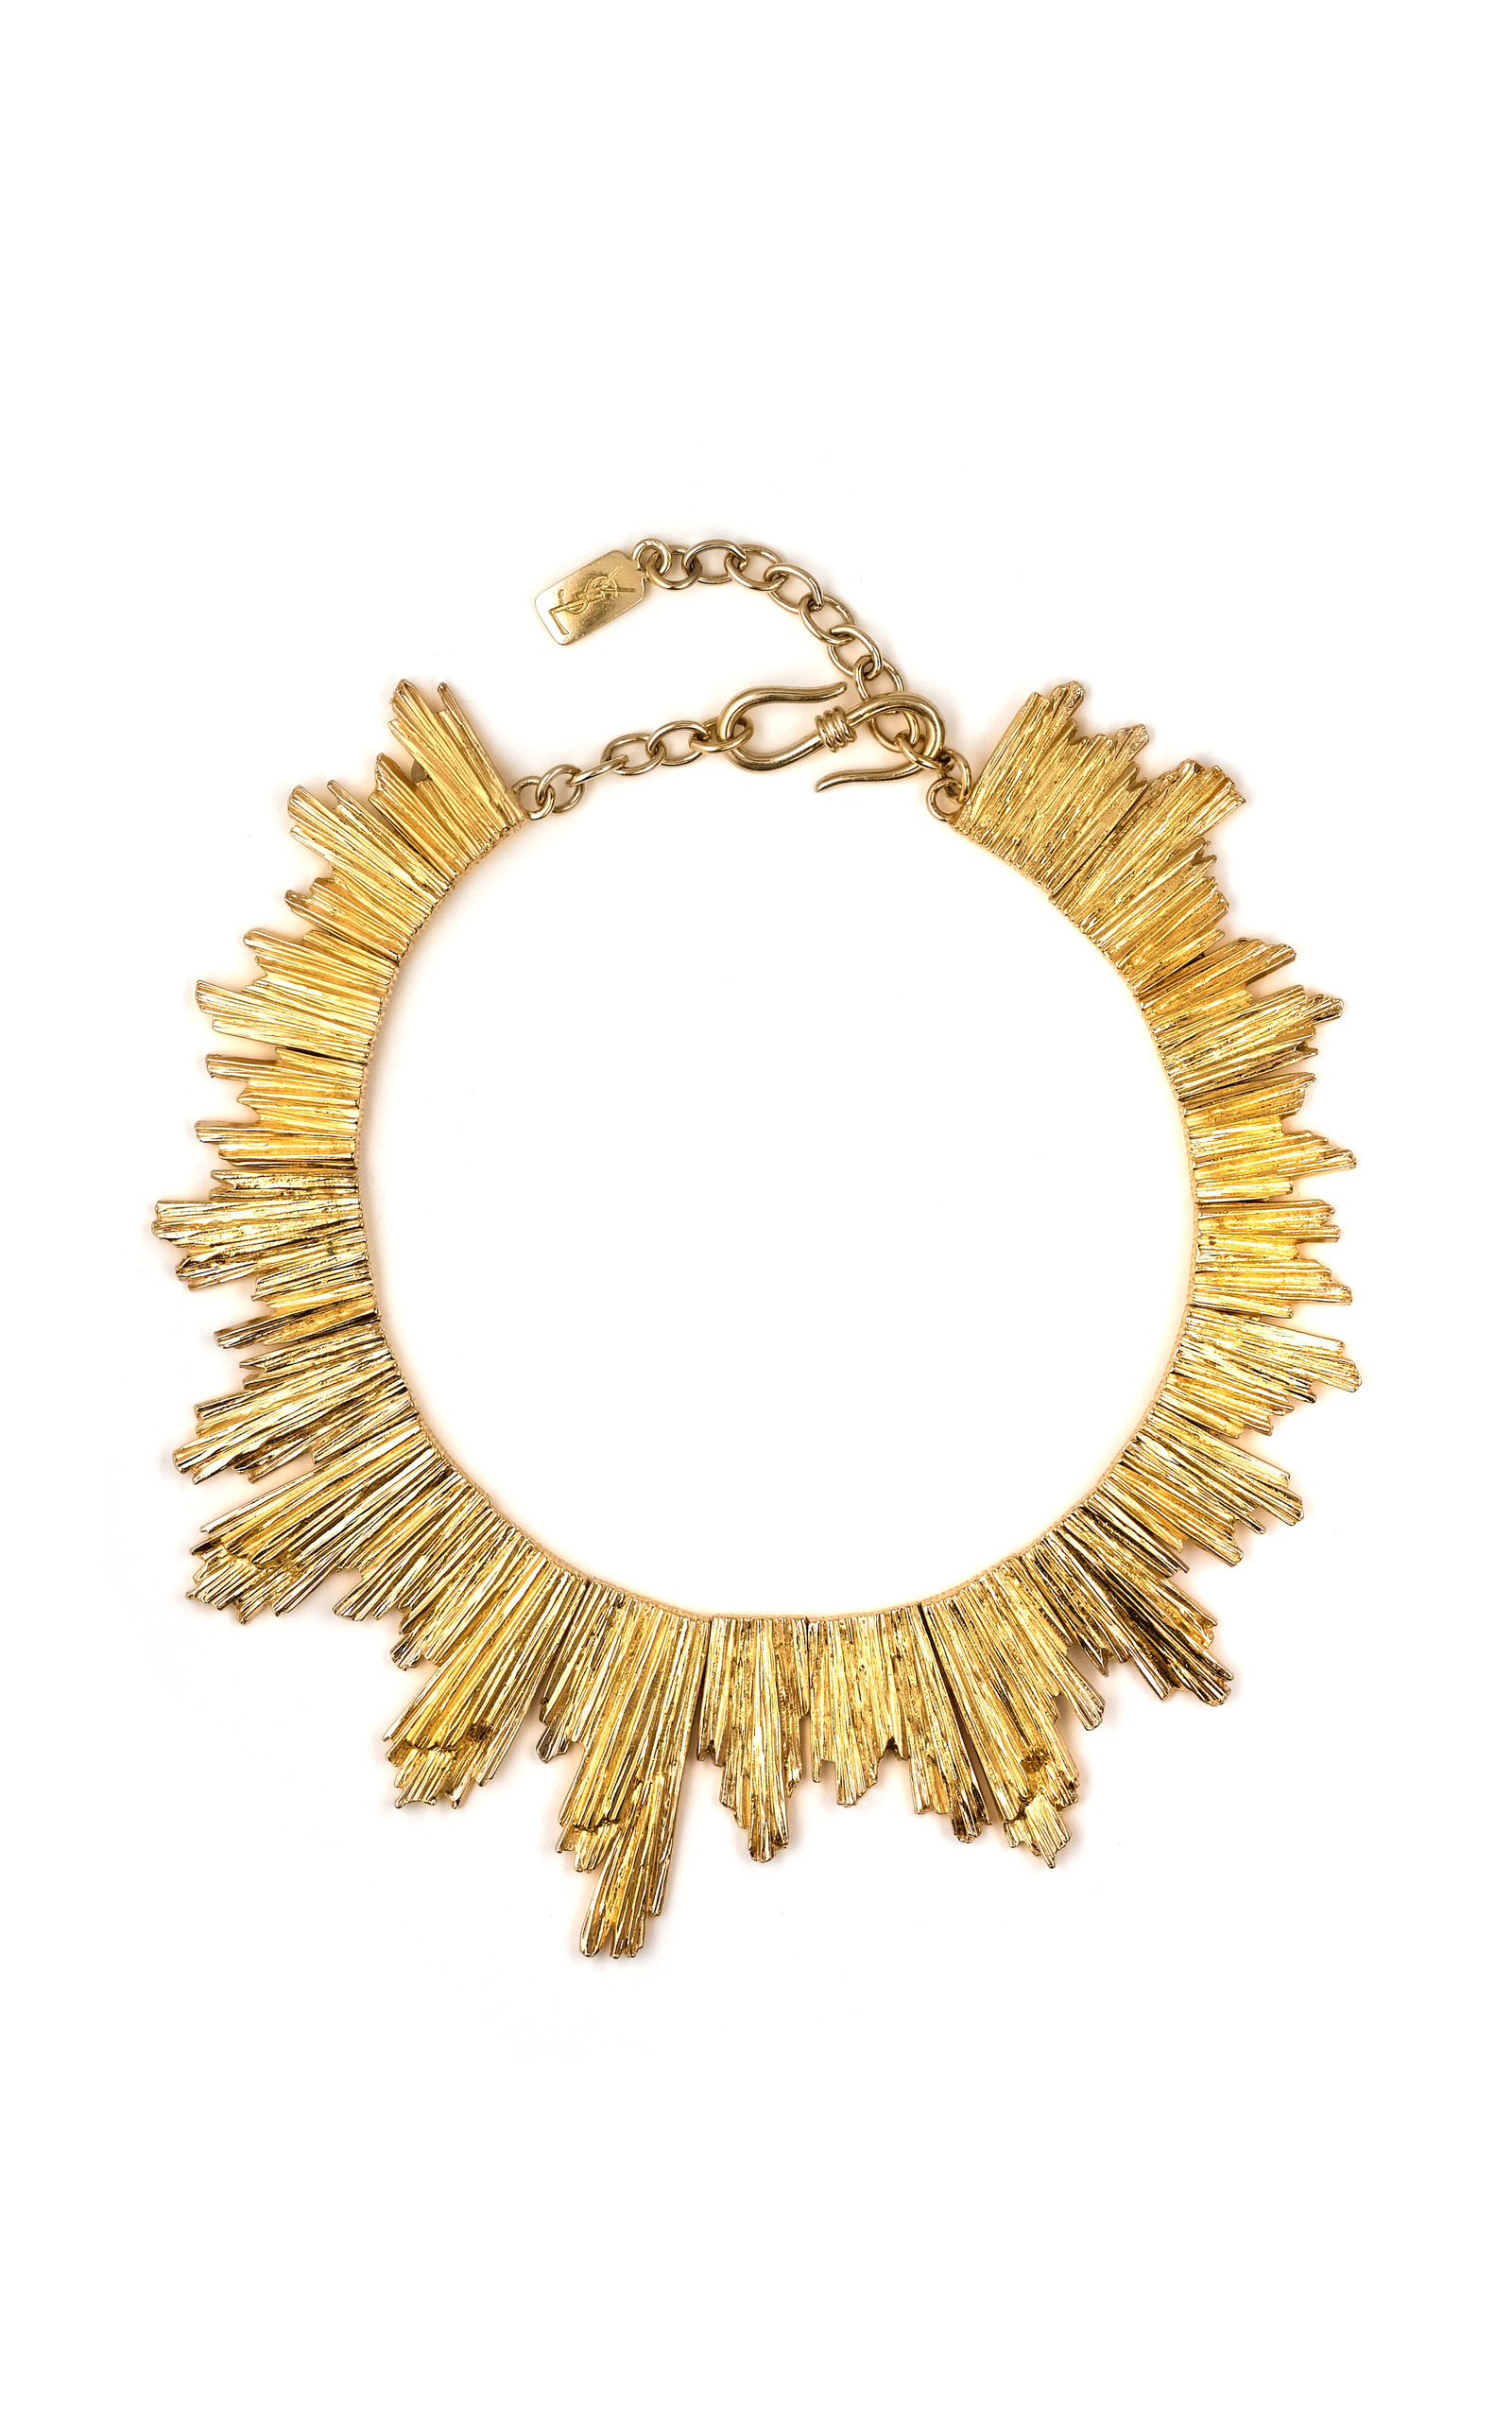 seraph golden and products sun img jewellery the necklace anatolia gifts